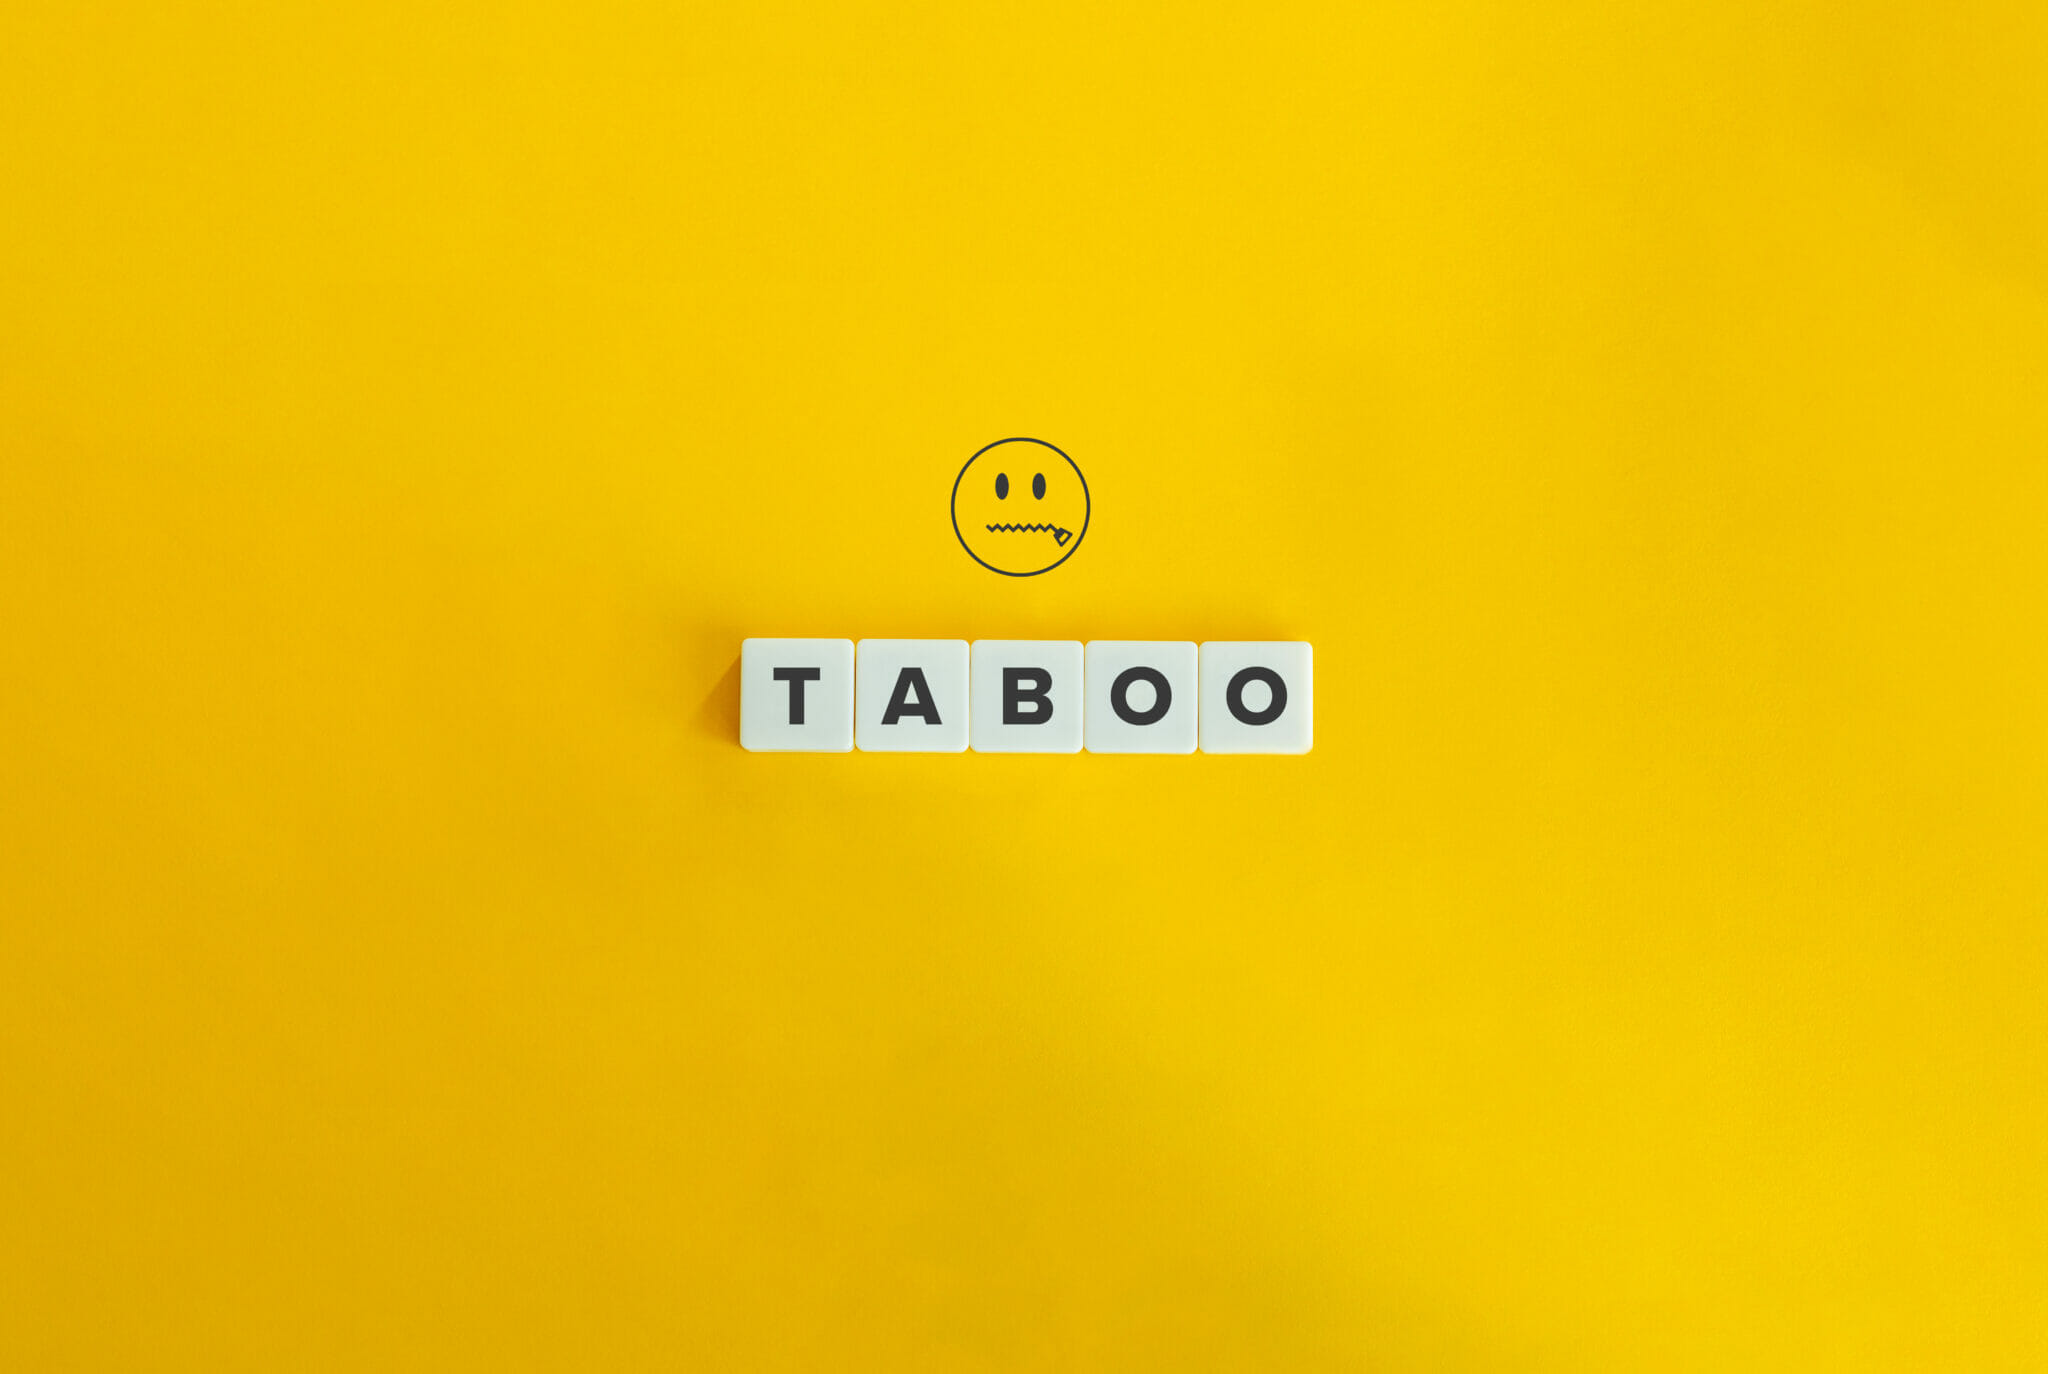 Talking Taboo – How brands use digital advertisements to embrace femininity, self-love and taboo topics.